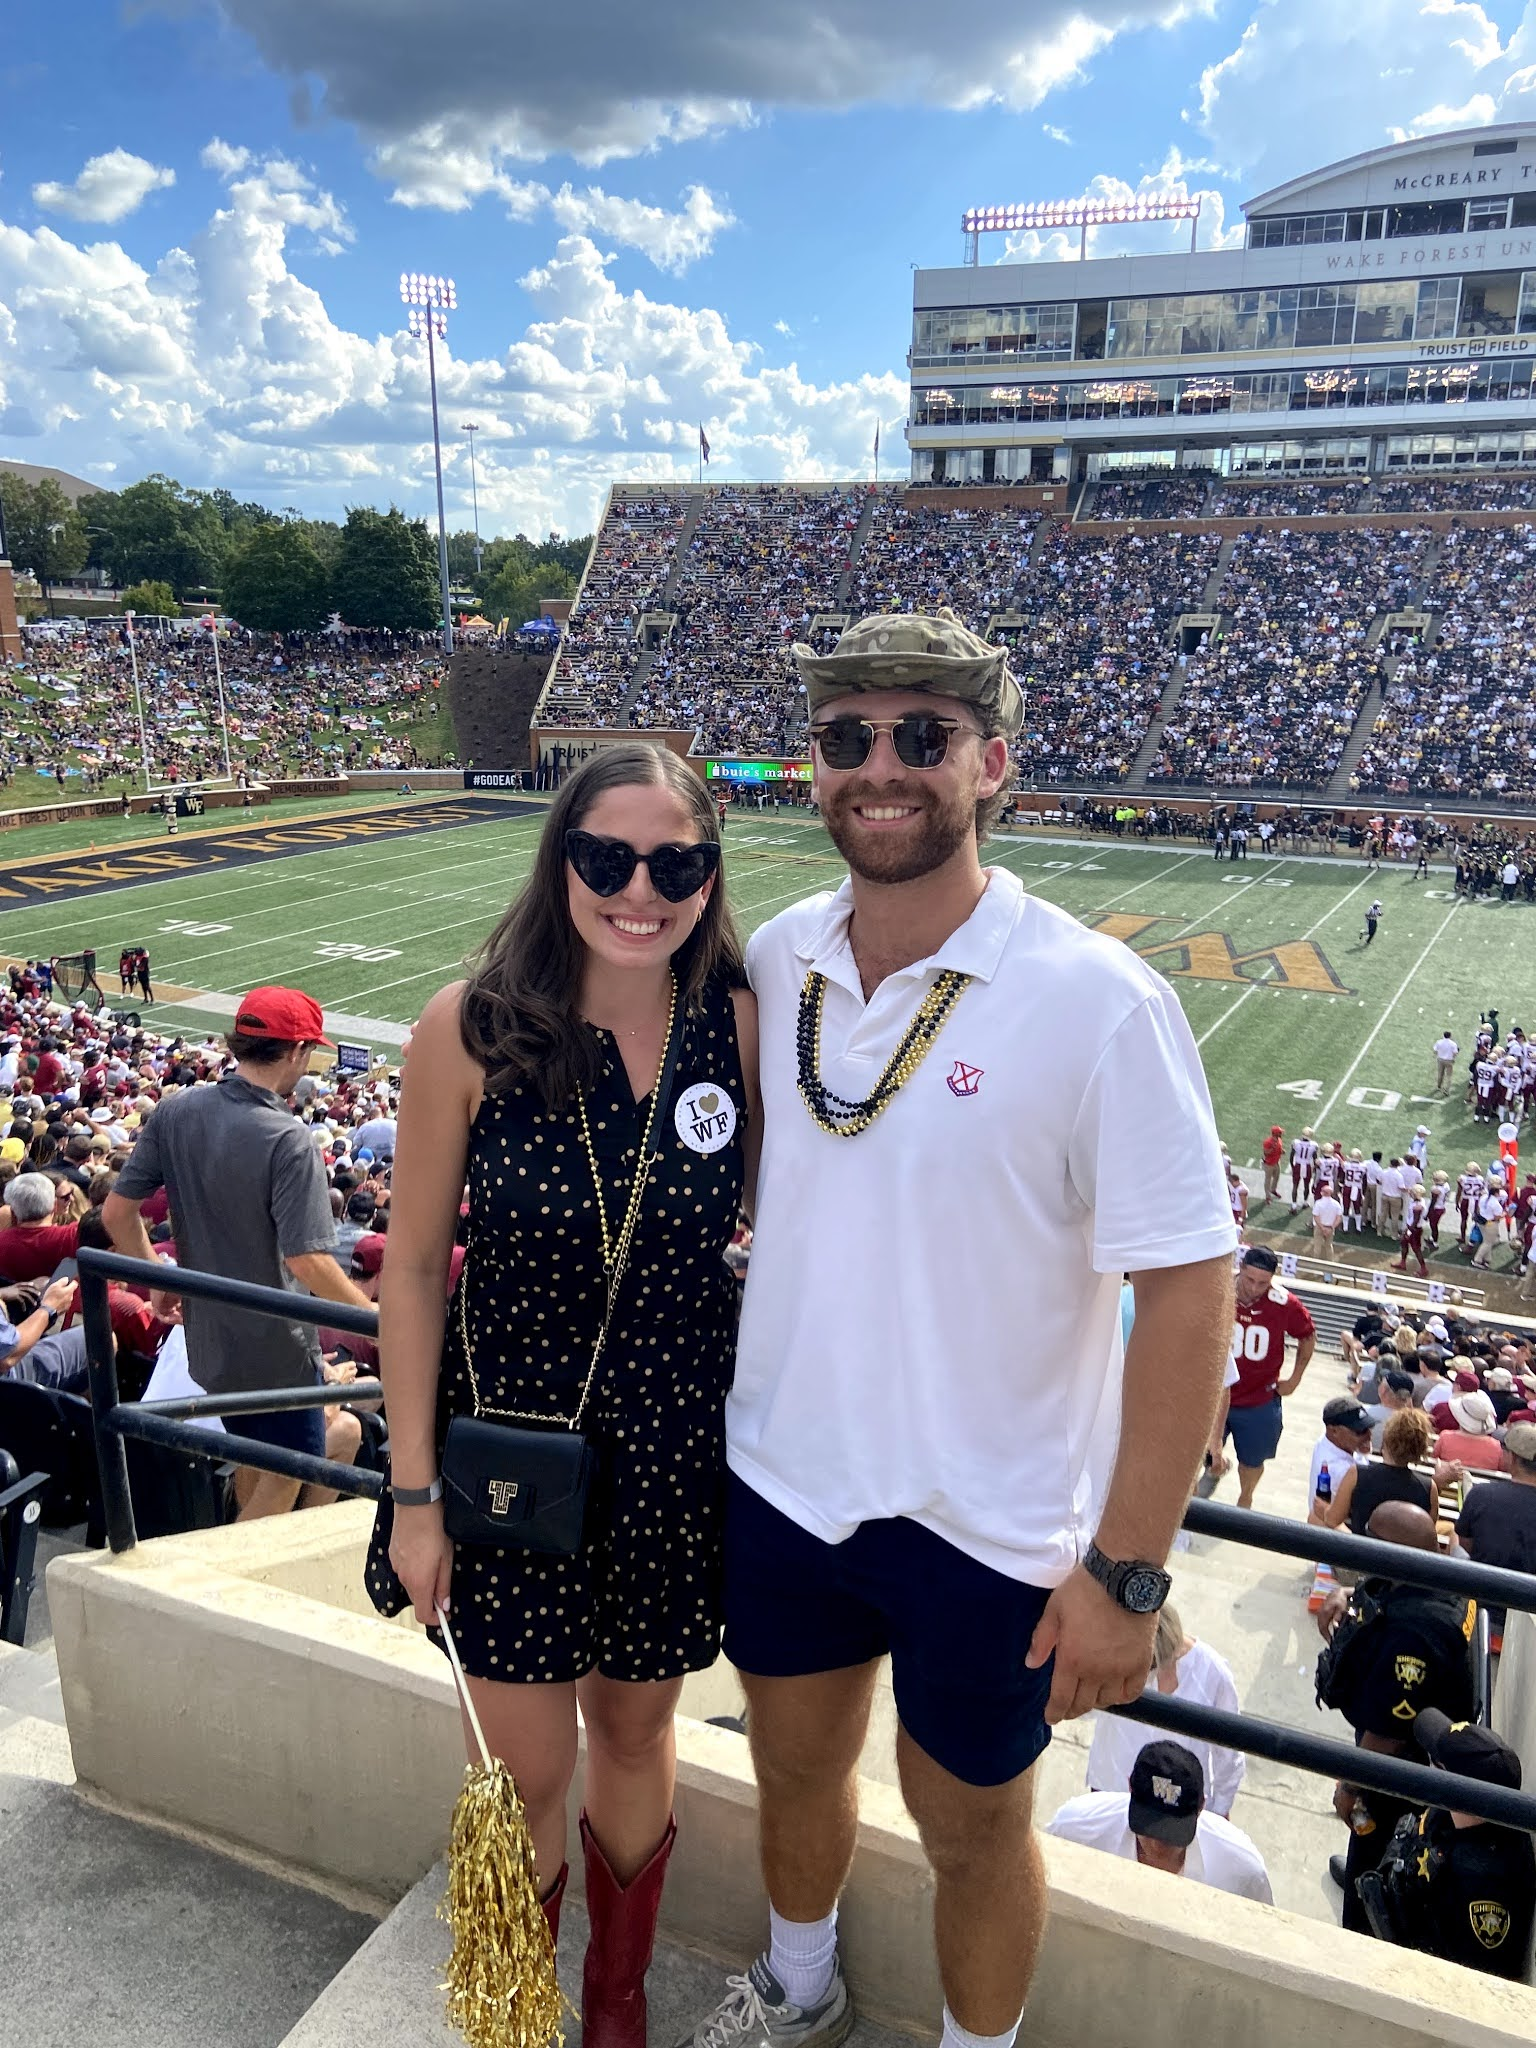 wake football, go deacs, home game, wfu, wake forest, what to wear to a football game